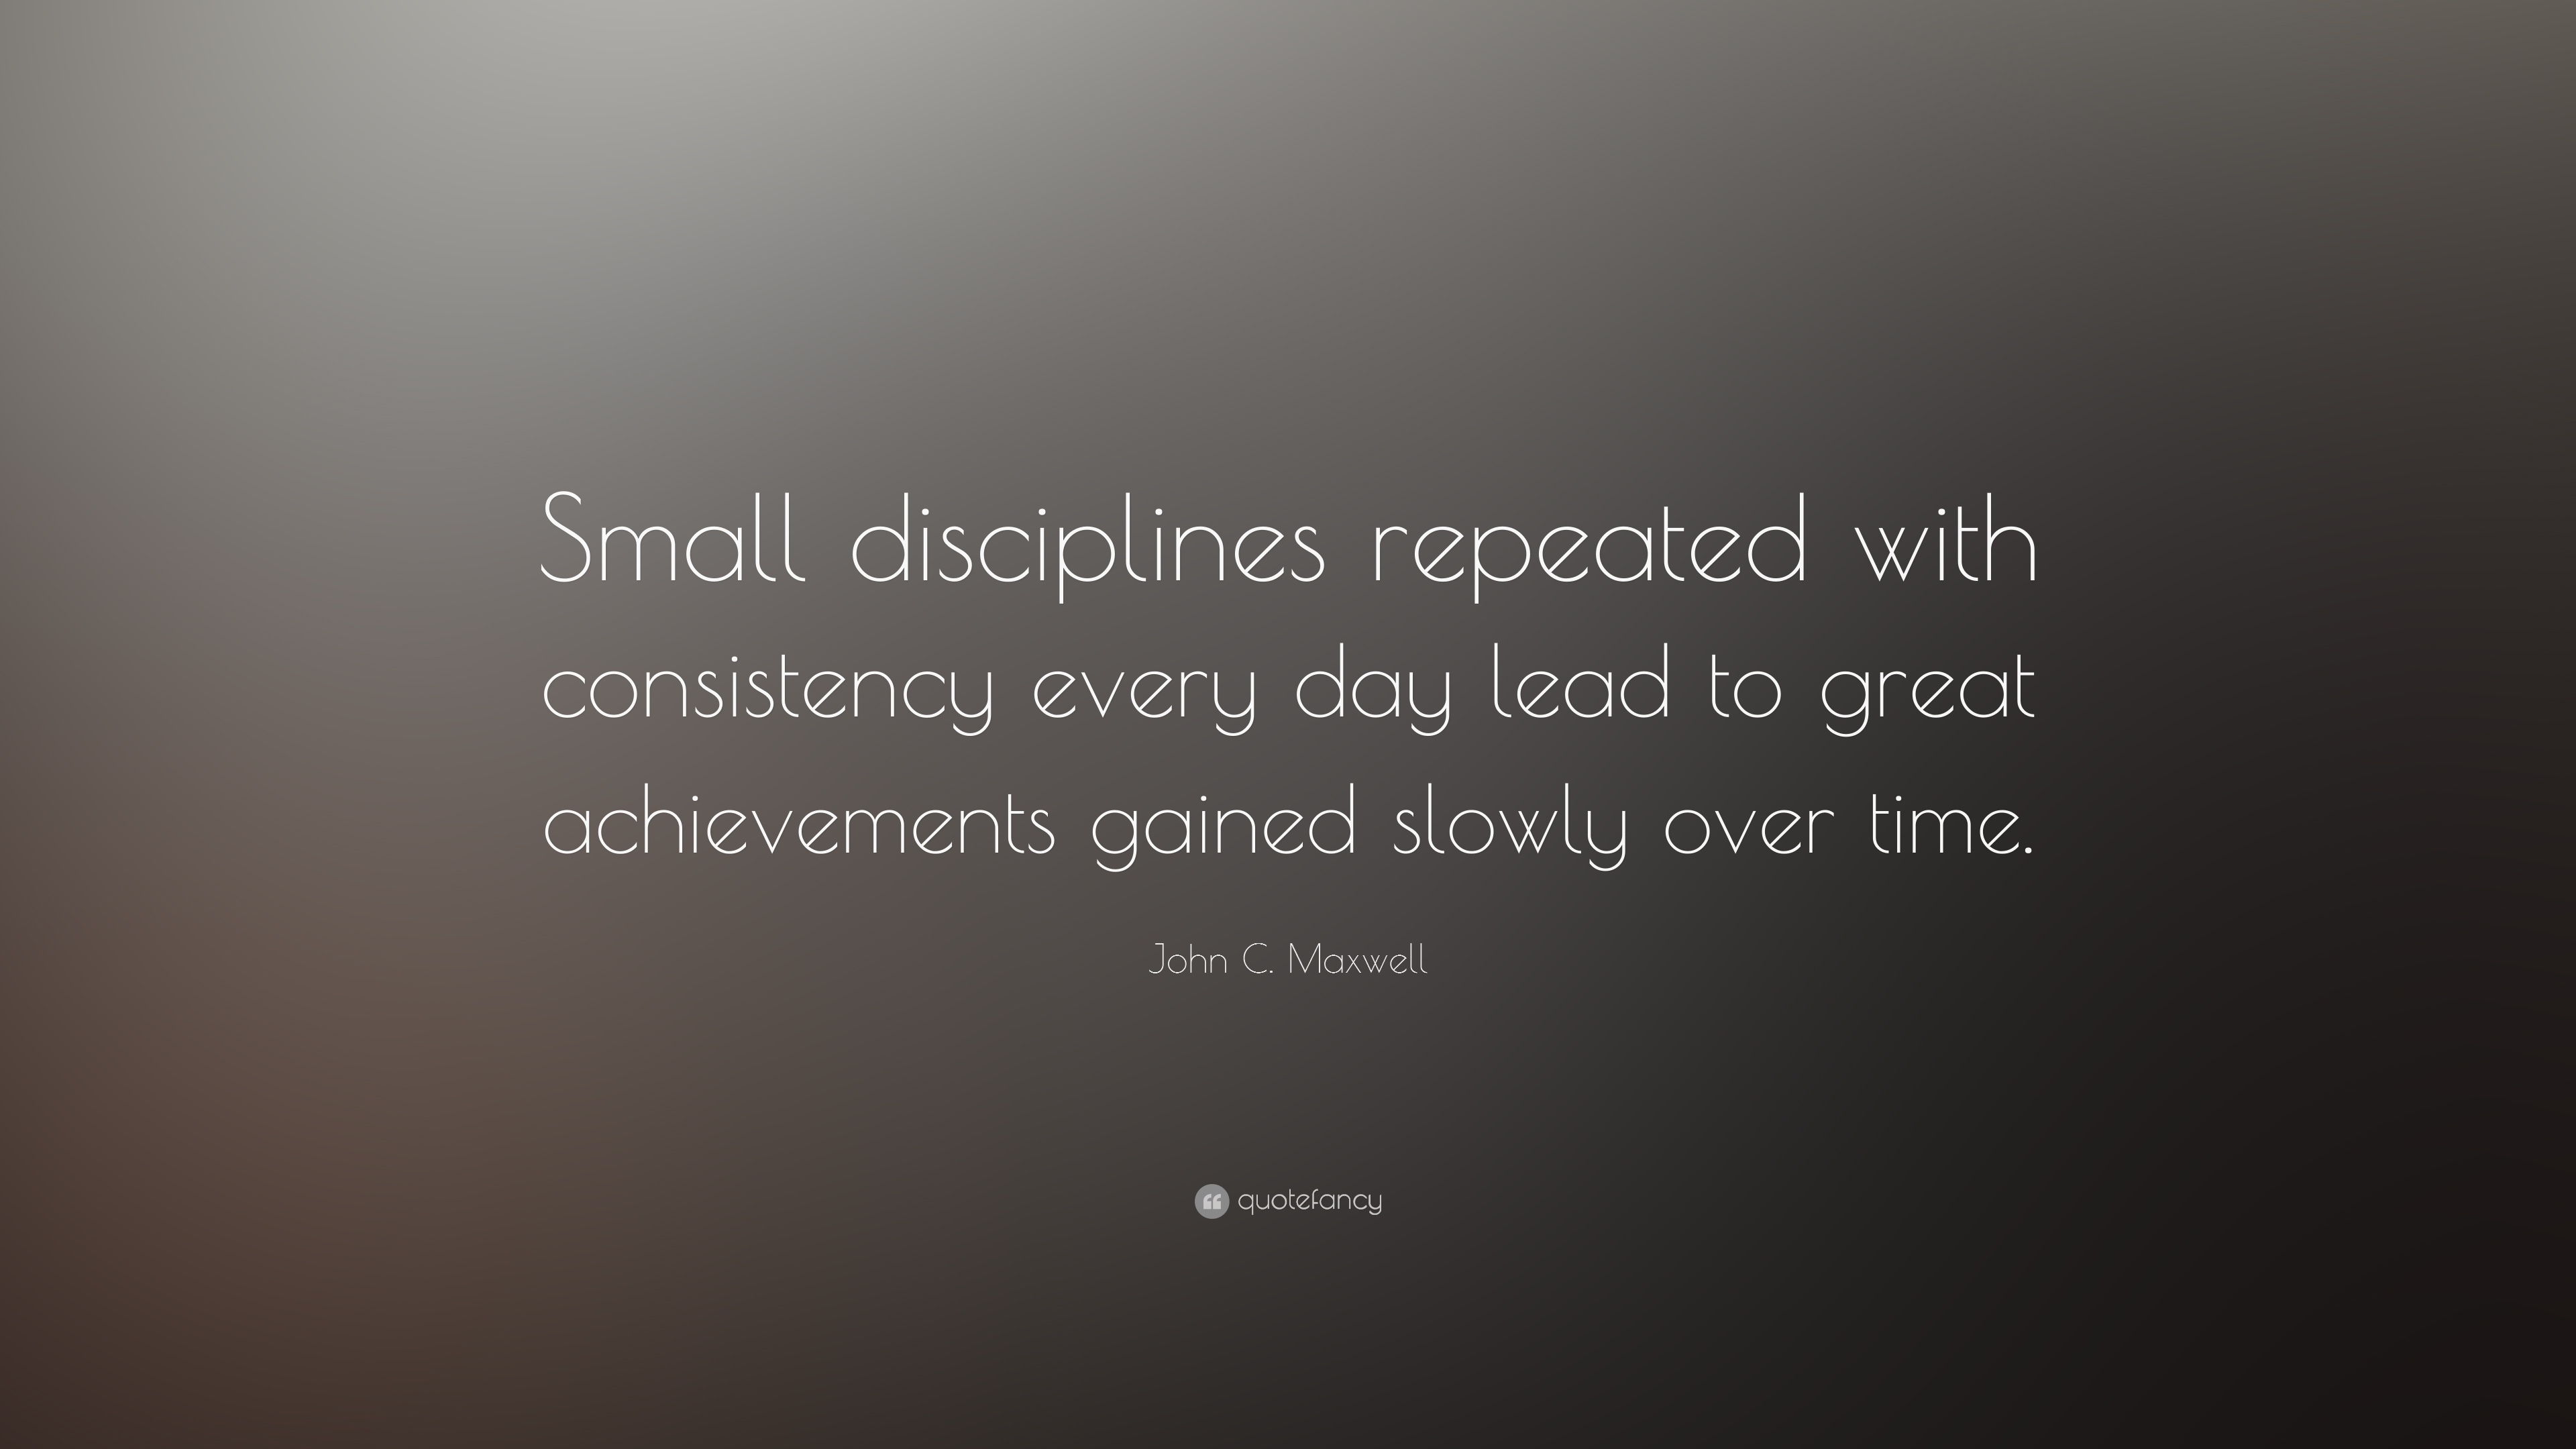 John C Maxwell Quote Small Disciplines Repeated With Consistency Every Day Lead To Great